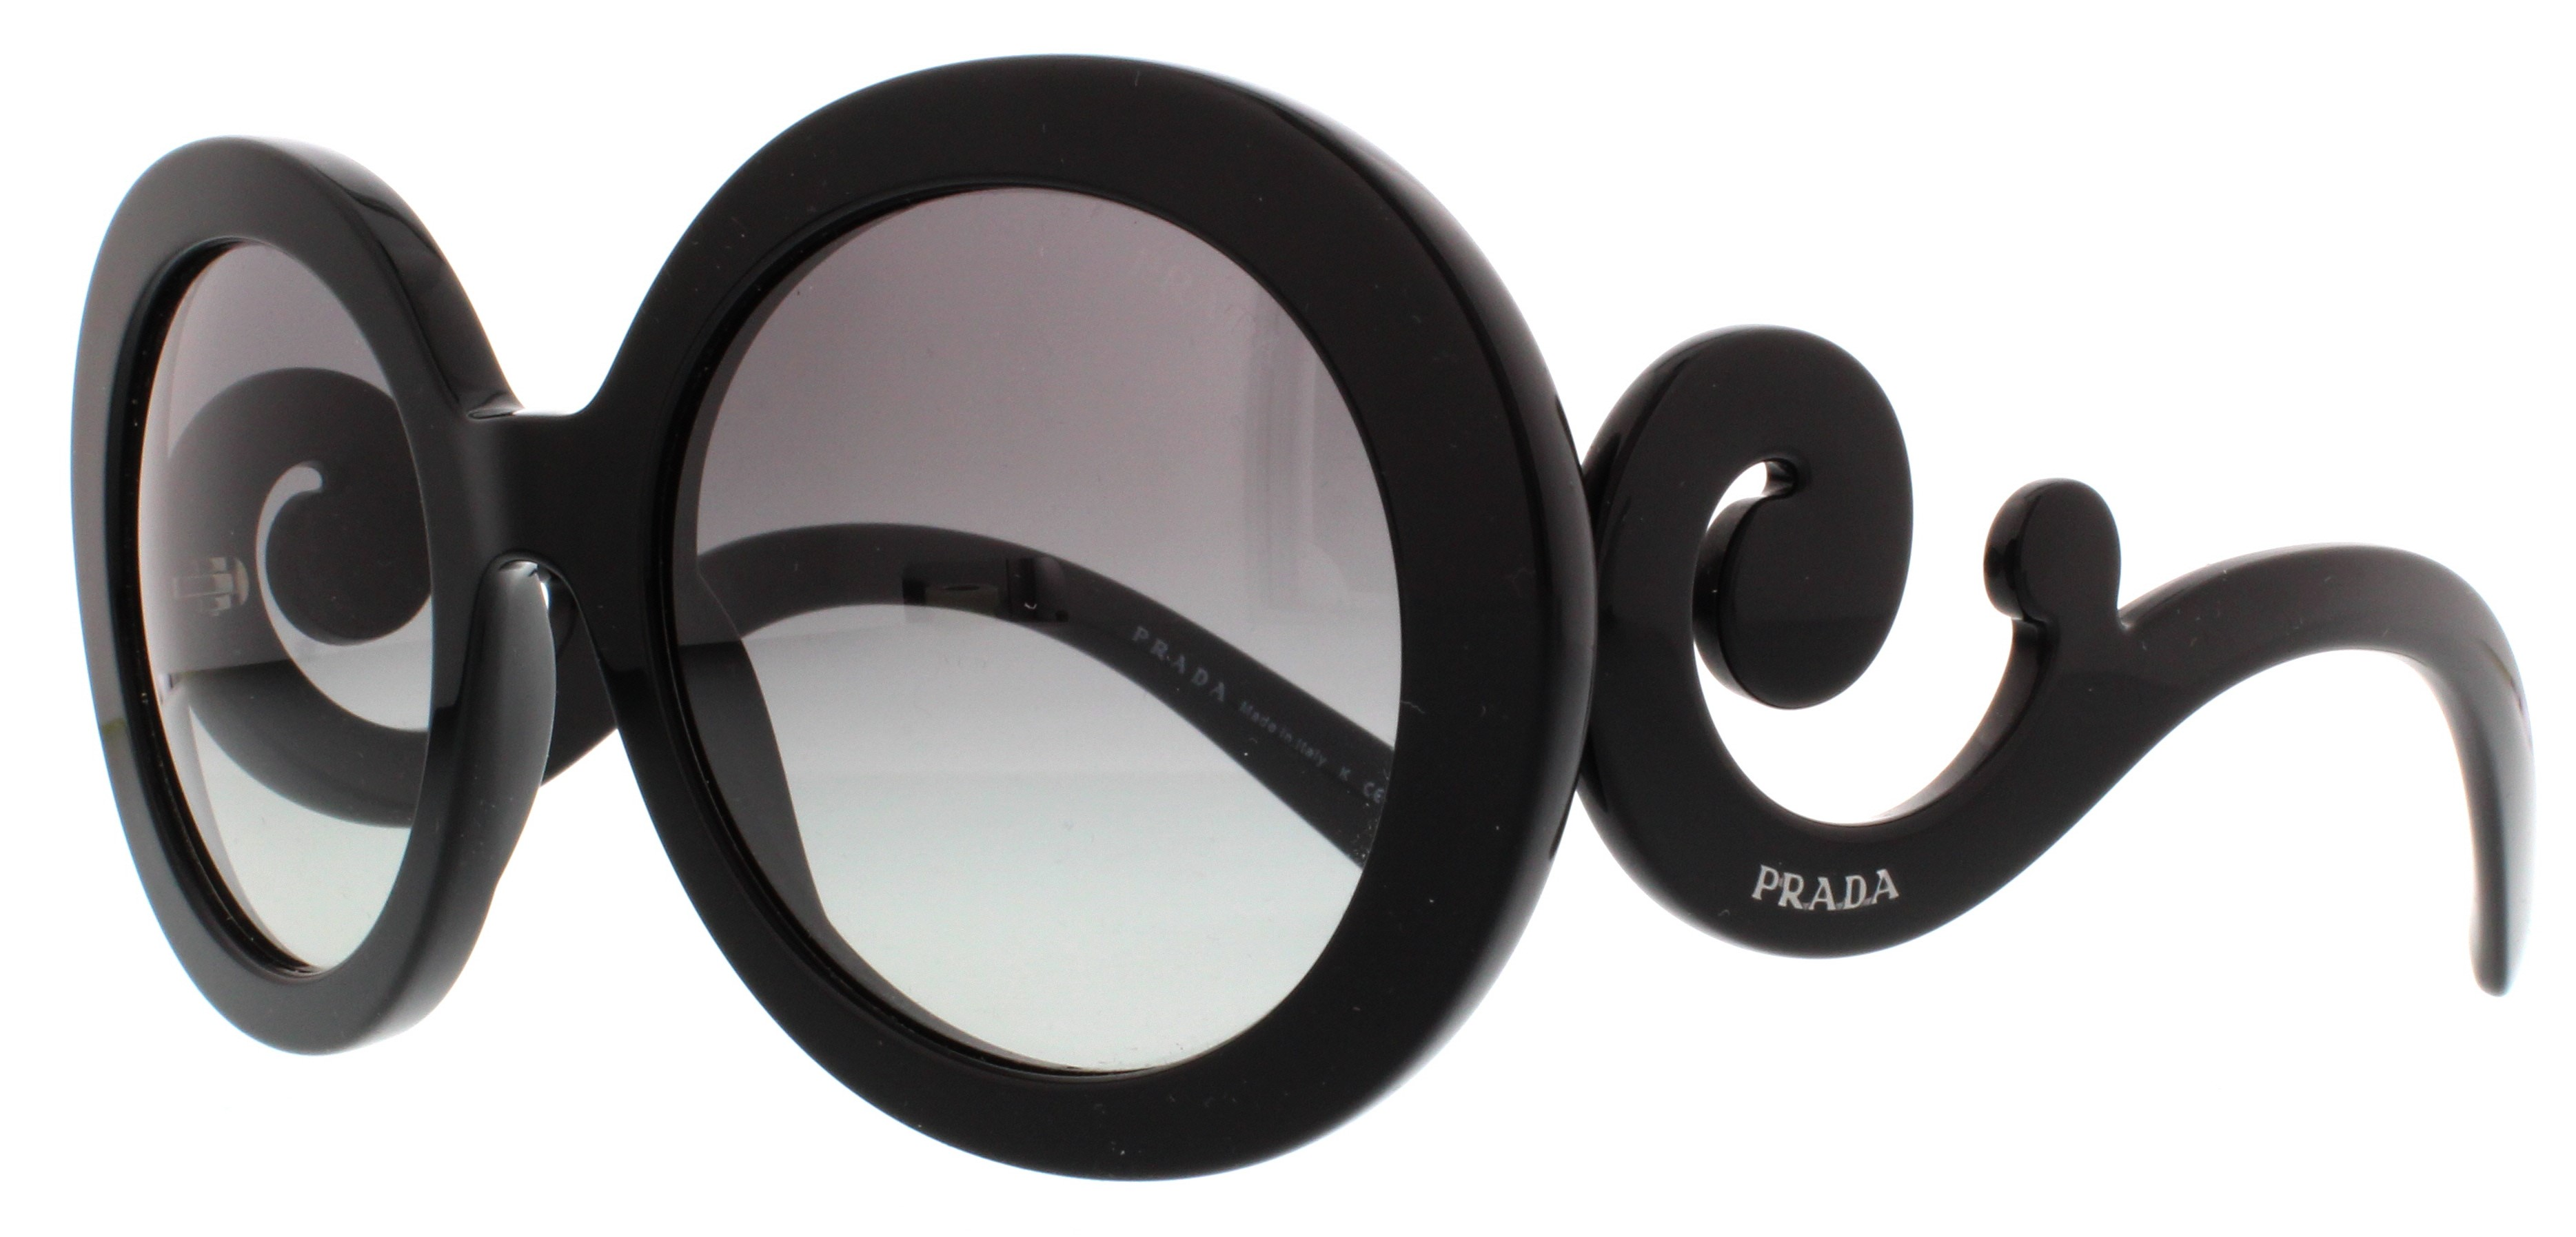 bb9e9bad3d70e Prada - Designer Frames Outlet